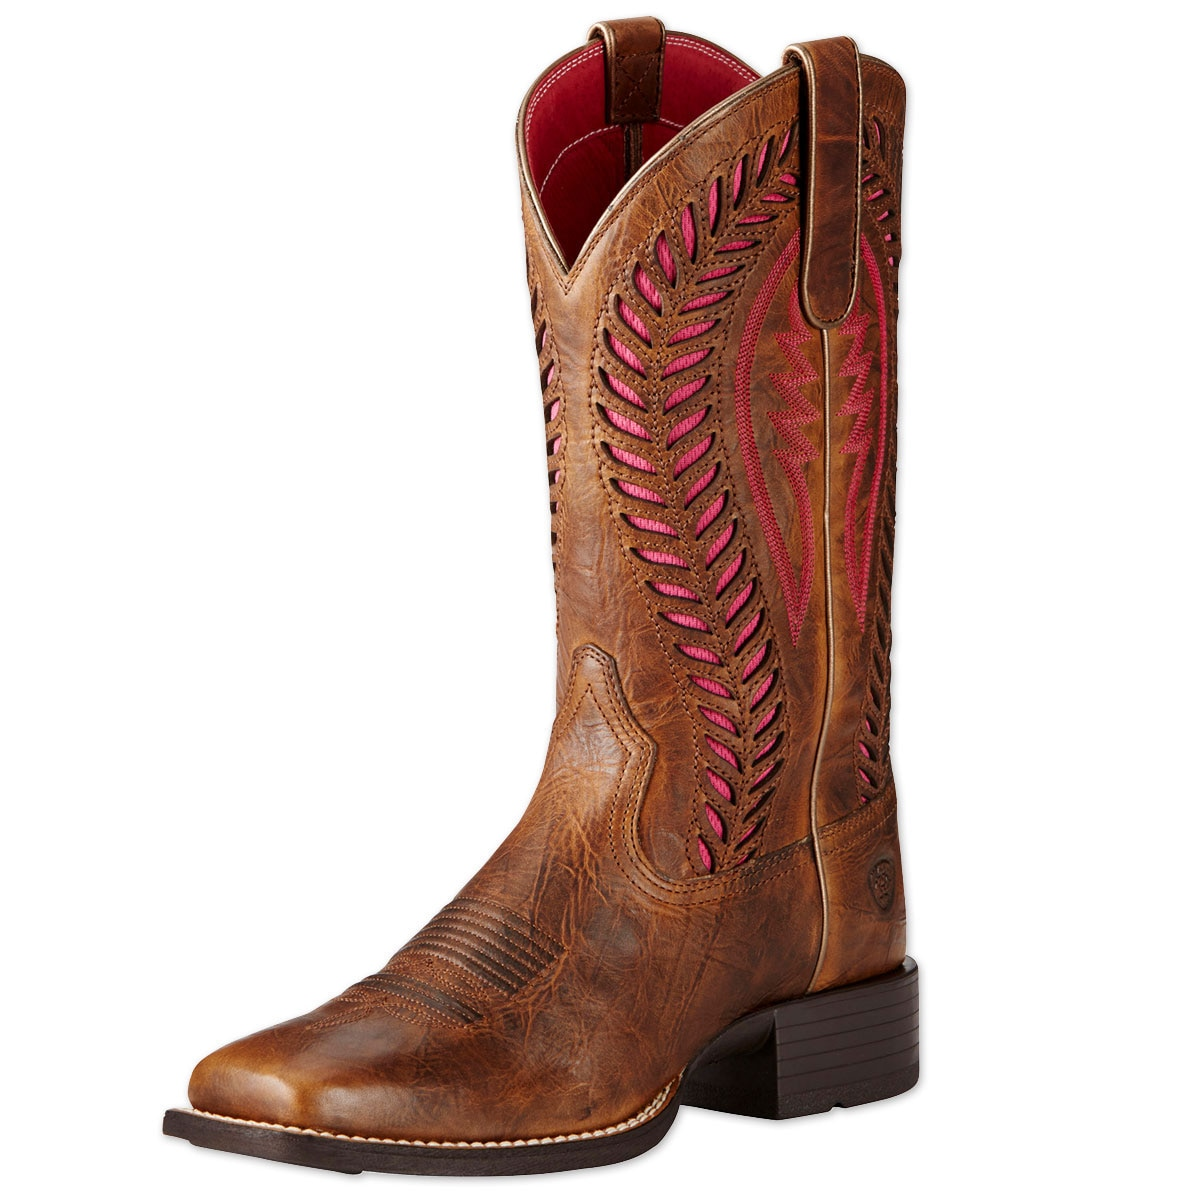 Ariat Women's Quickdraw VentTEK Boots